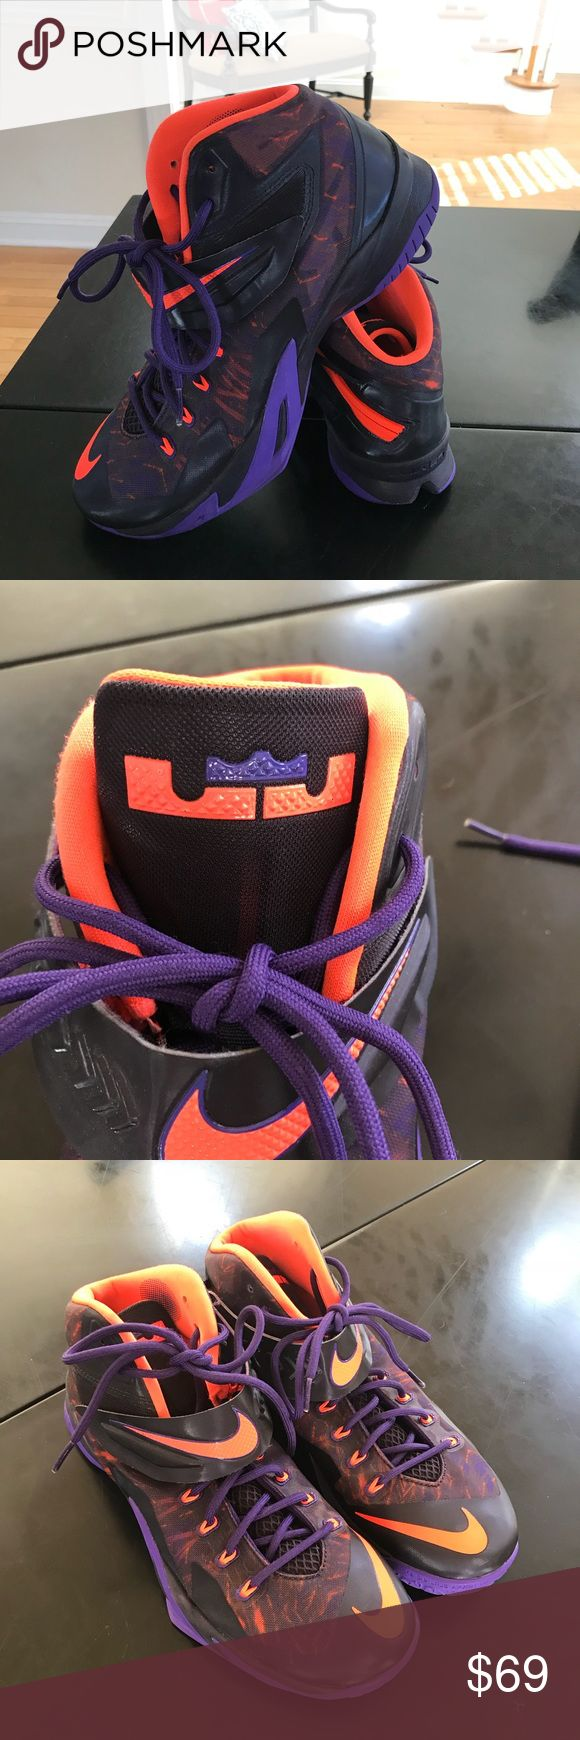 Nike LeBron Zoom soldier 8 Size 11.5. Like new. Excellent used condition. No original box Nike Shoes Sneakers